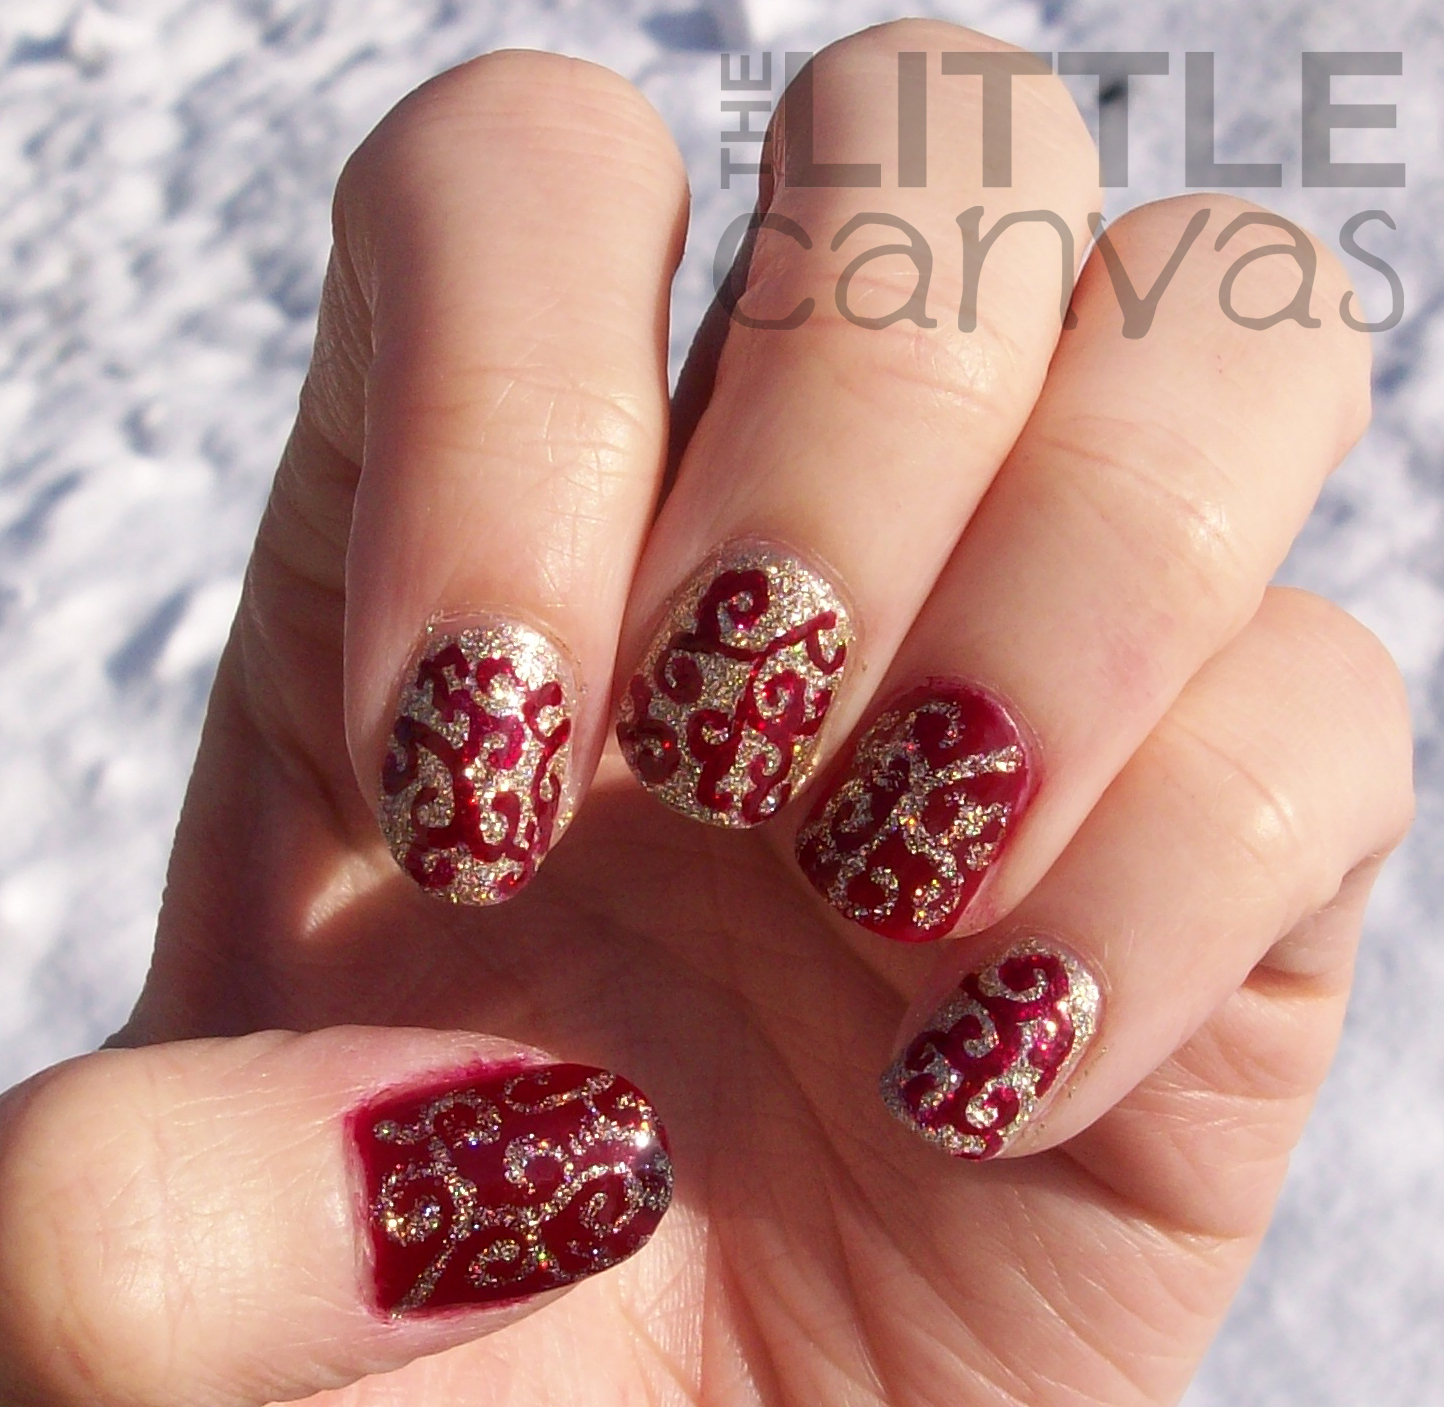 Merry Christmas - Swirl-y Nail Art :) - The Little Canvas